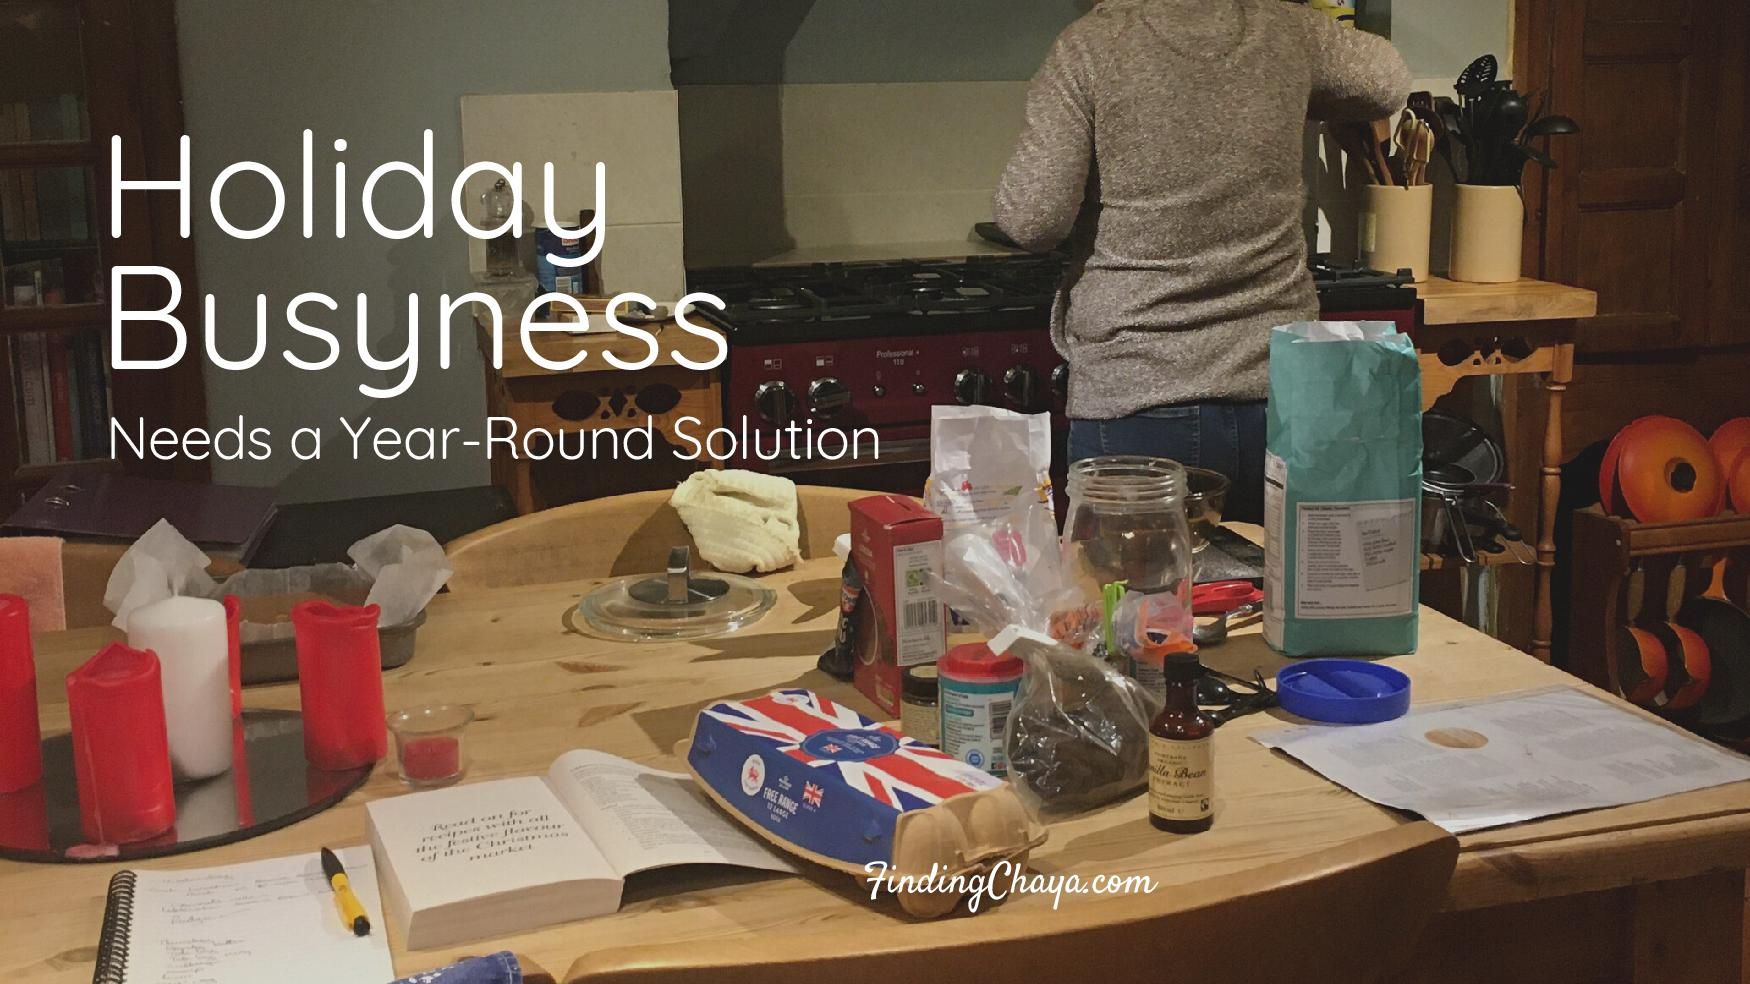 Holiday Busyness needs a Year-Round Solution